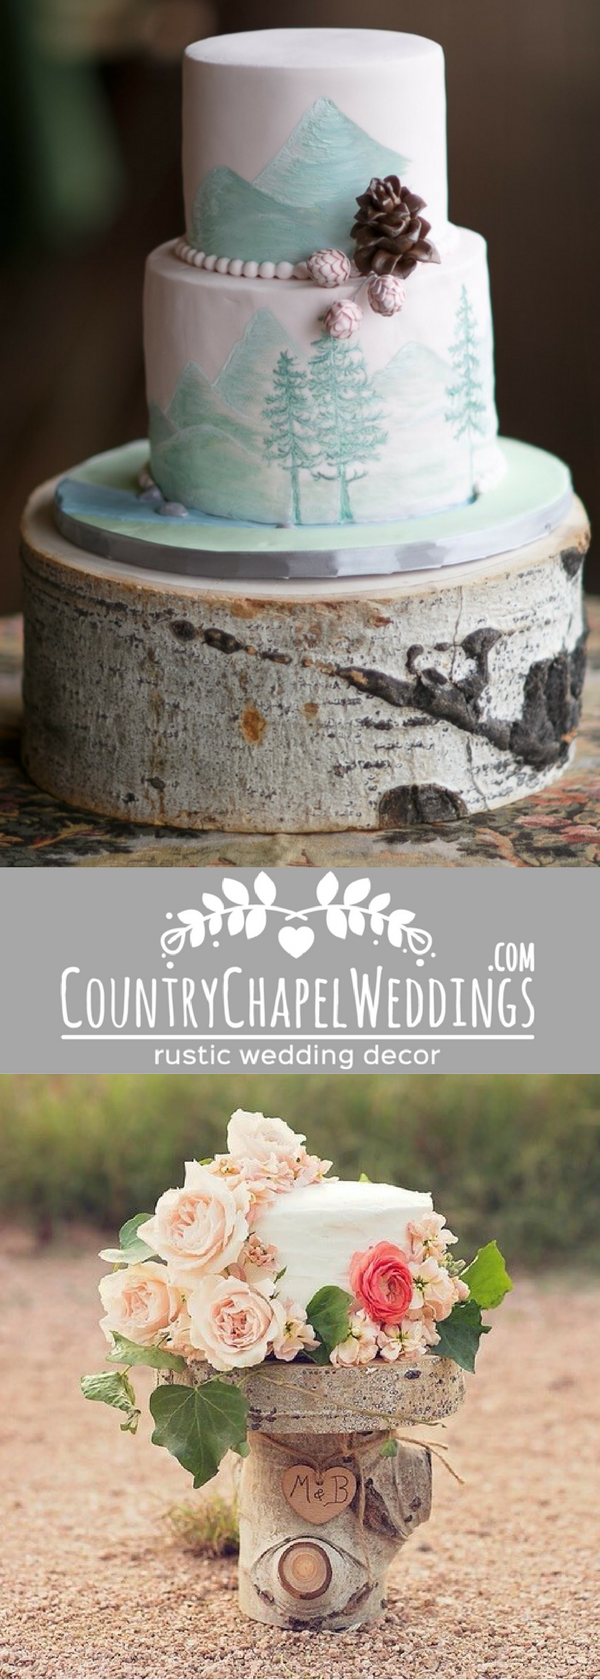 Cake stands and wedding decor at Country Chapel Weddings ...